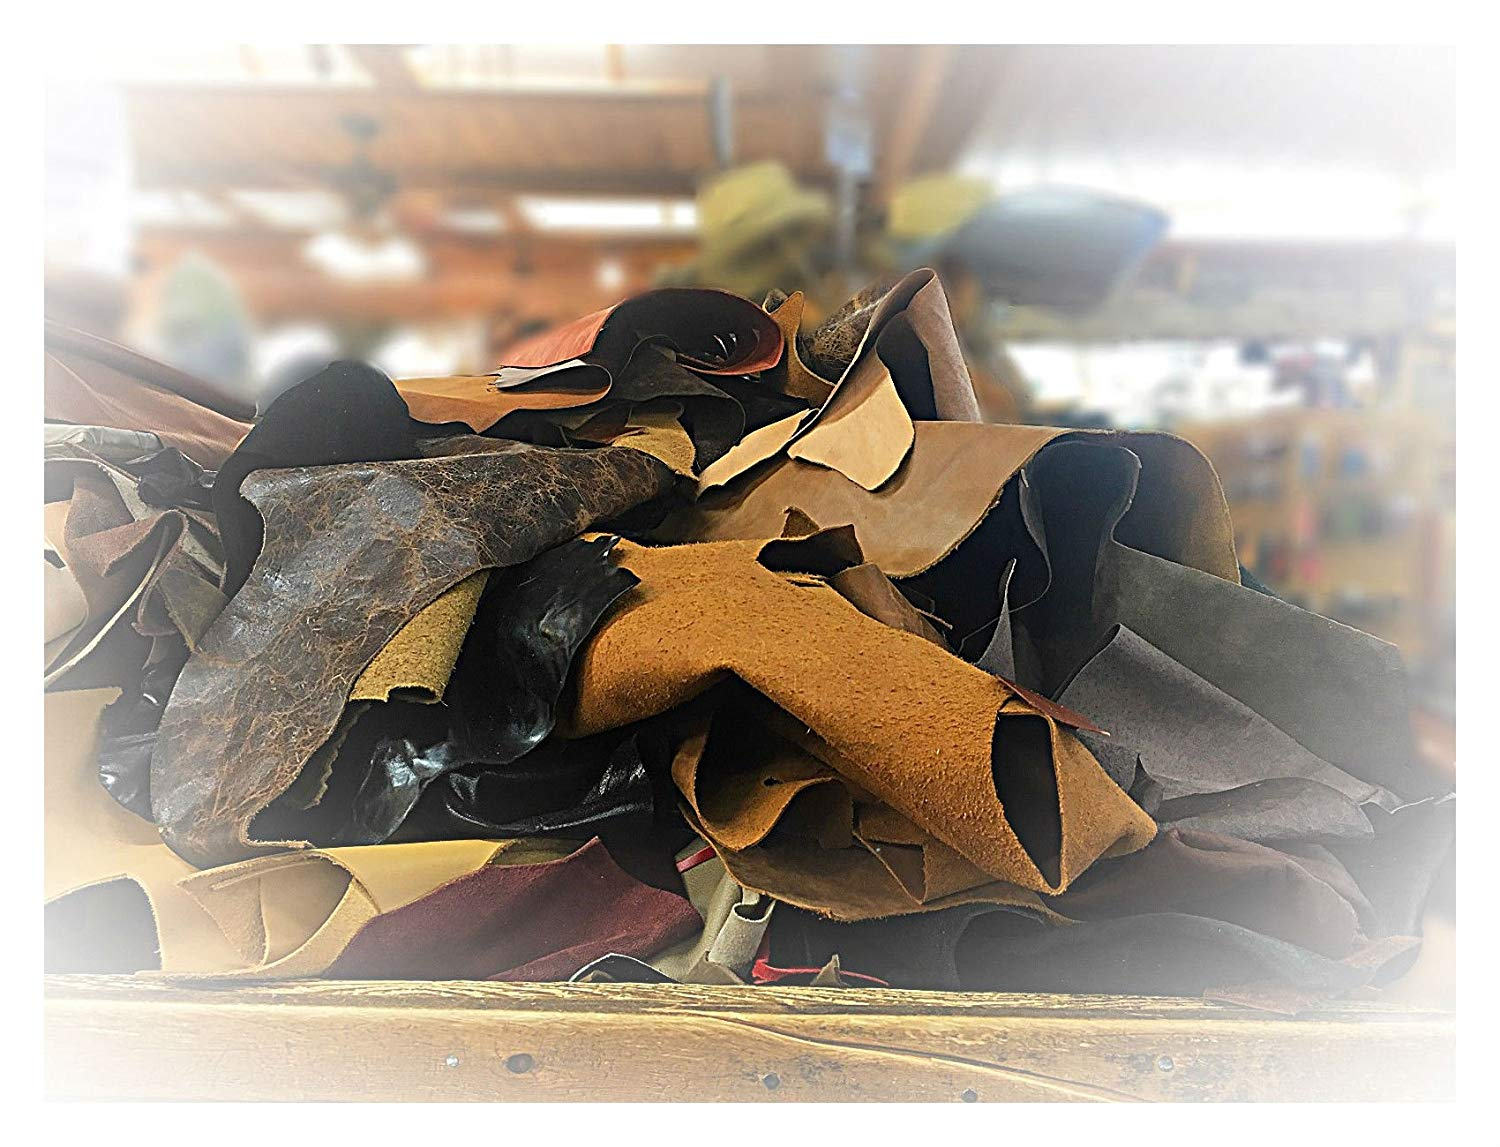 1 Pound of Upholstery Scrap Cowhide Leather, Mixed Weights and Colors